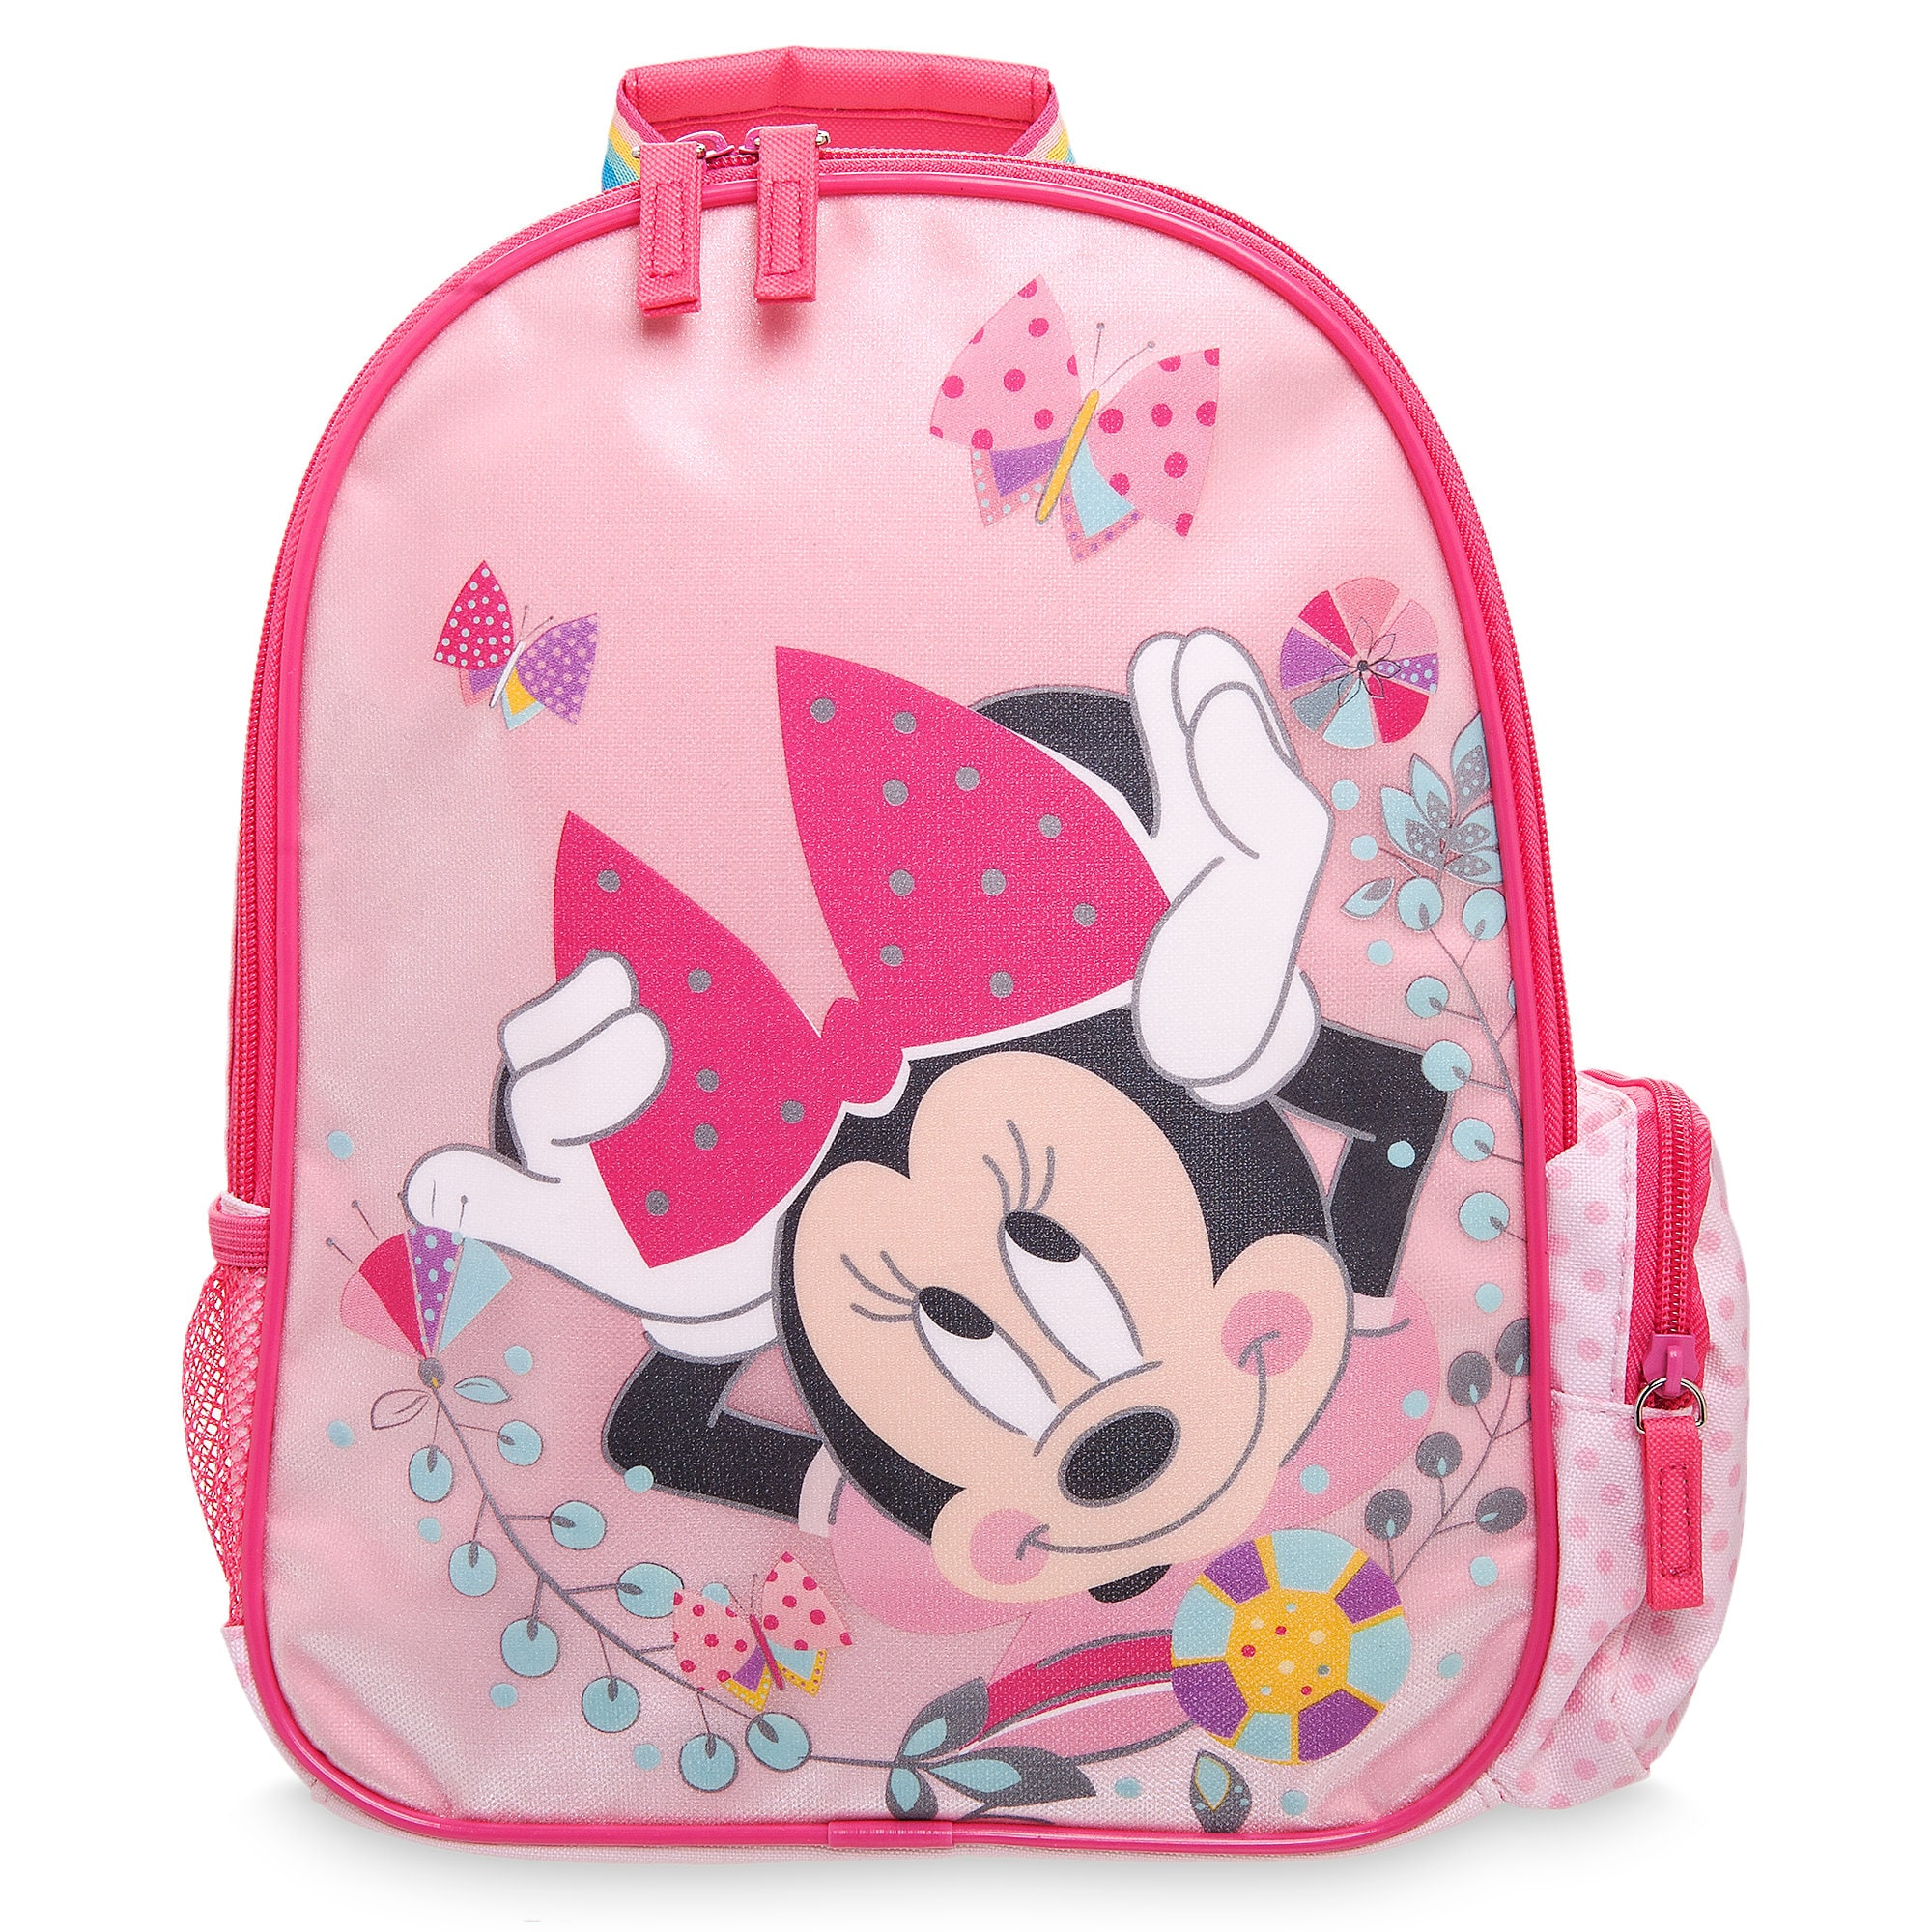 1618539cde7 Disney park minnie mouse mesh backpack fenix toulouse handball jpg  1200x1200 Minnie mouse mini backpack target